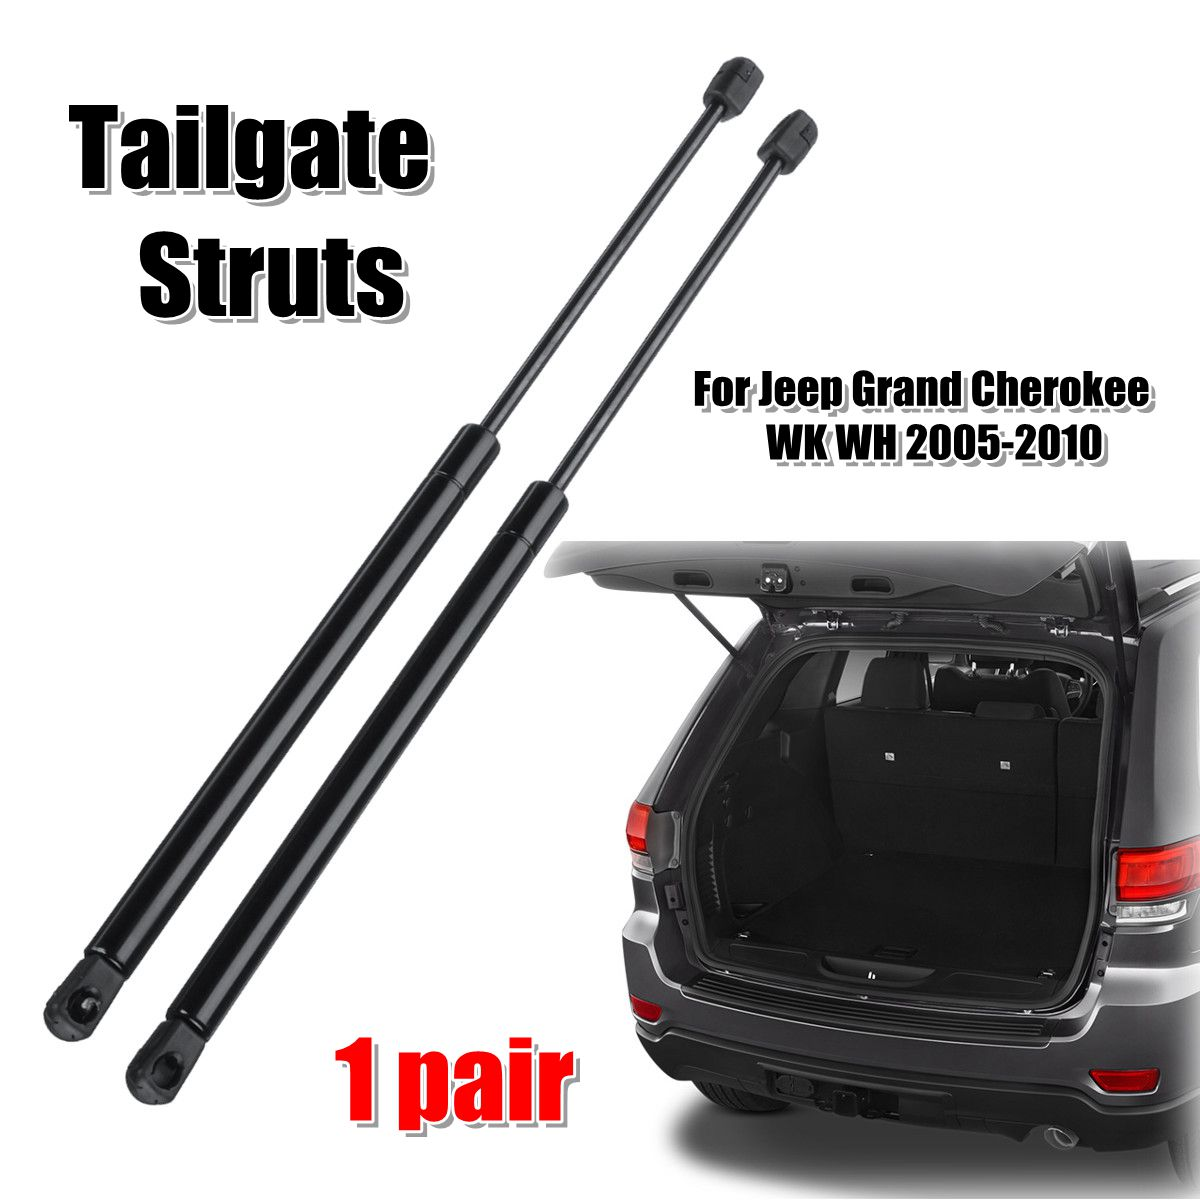 2pcs Rear Tailgate Boot Gas Struts Support For Jeep Grand Cherokee WK WH 2005-2010 68025359AA 55394322AA2pcs Rear Tailgate Boot Gas Struts Support For Jeep Grand Cherokee WK WH 2005-2010 68025359AA 55394322AA